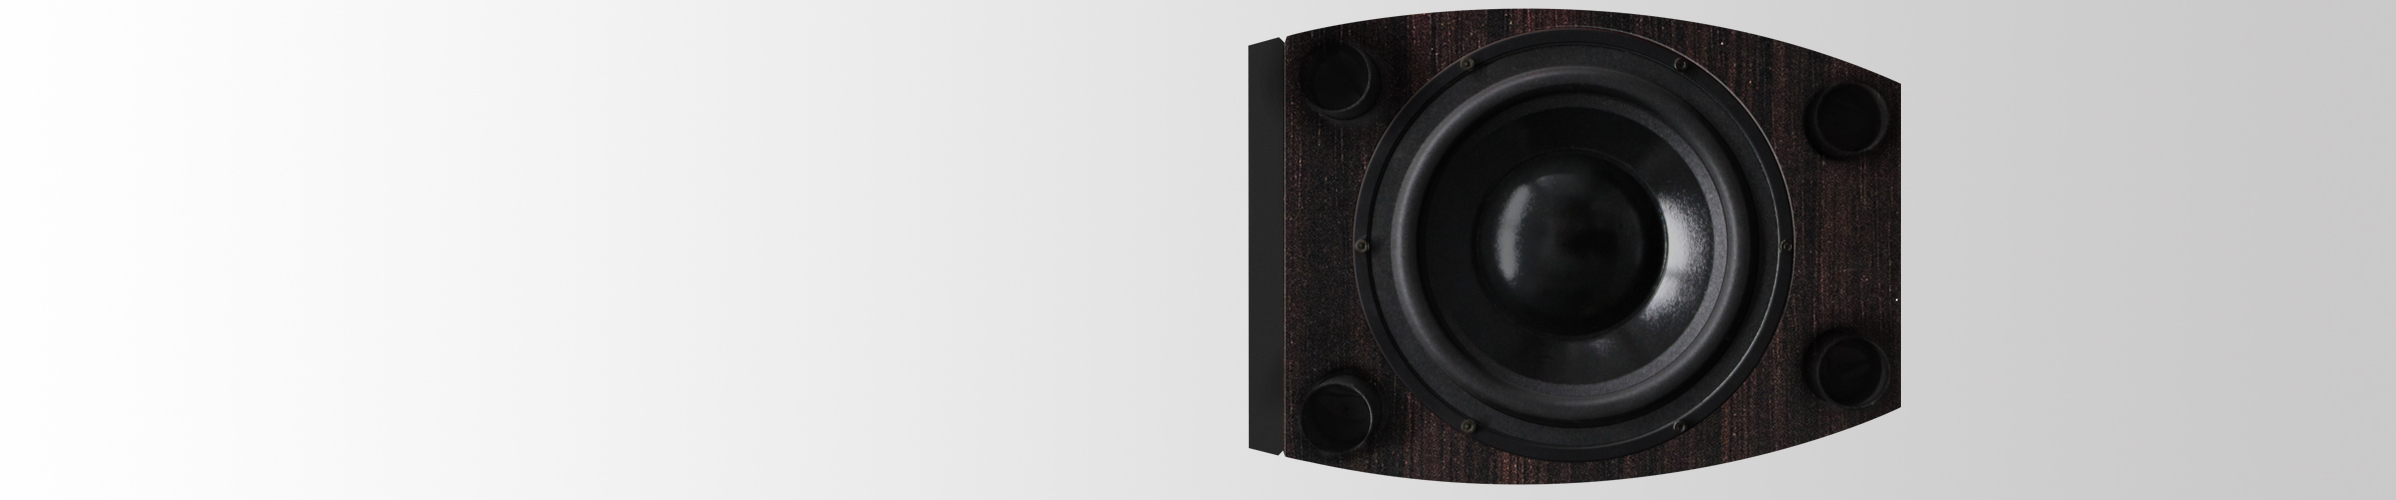 XLHTB Surround Sound System Subwoofer